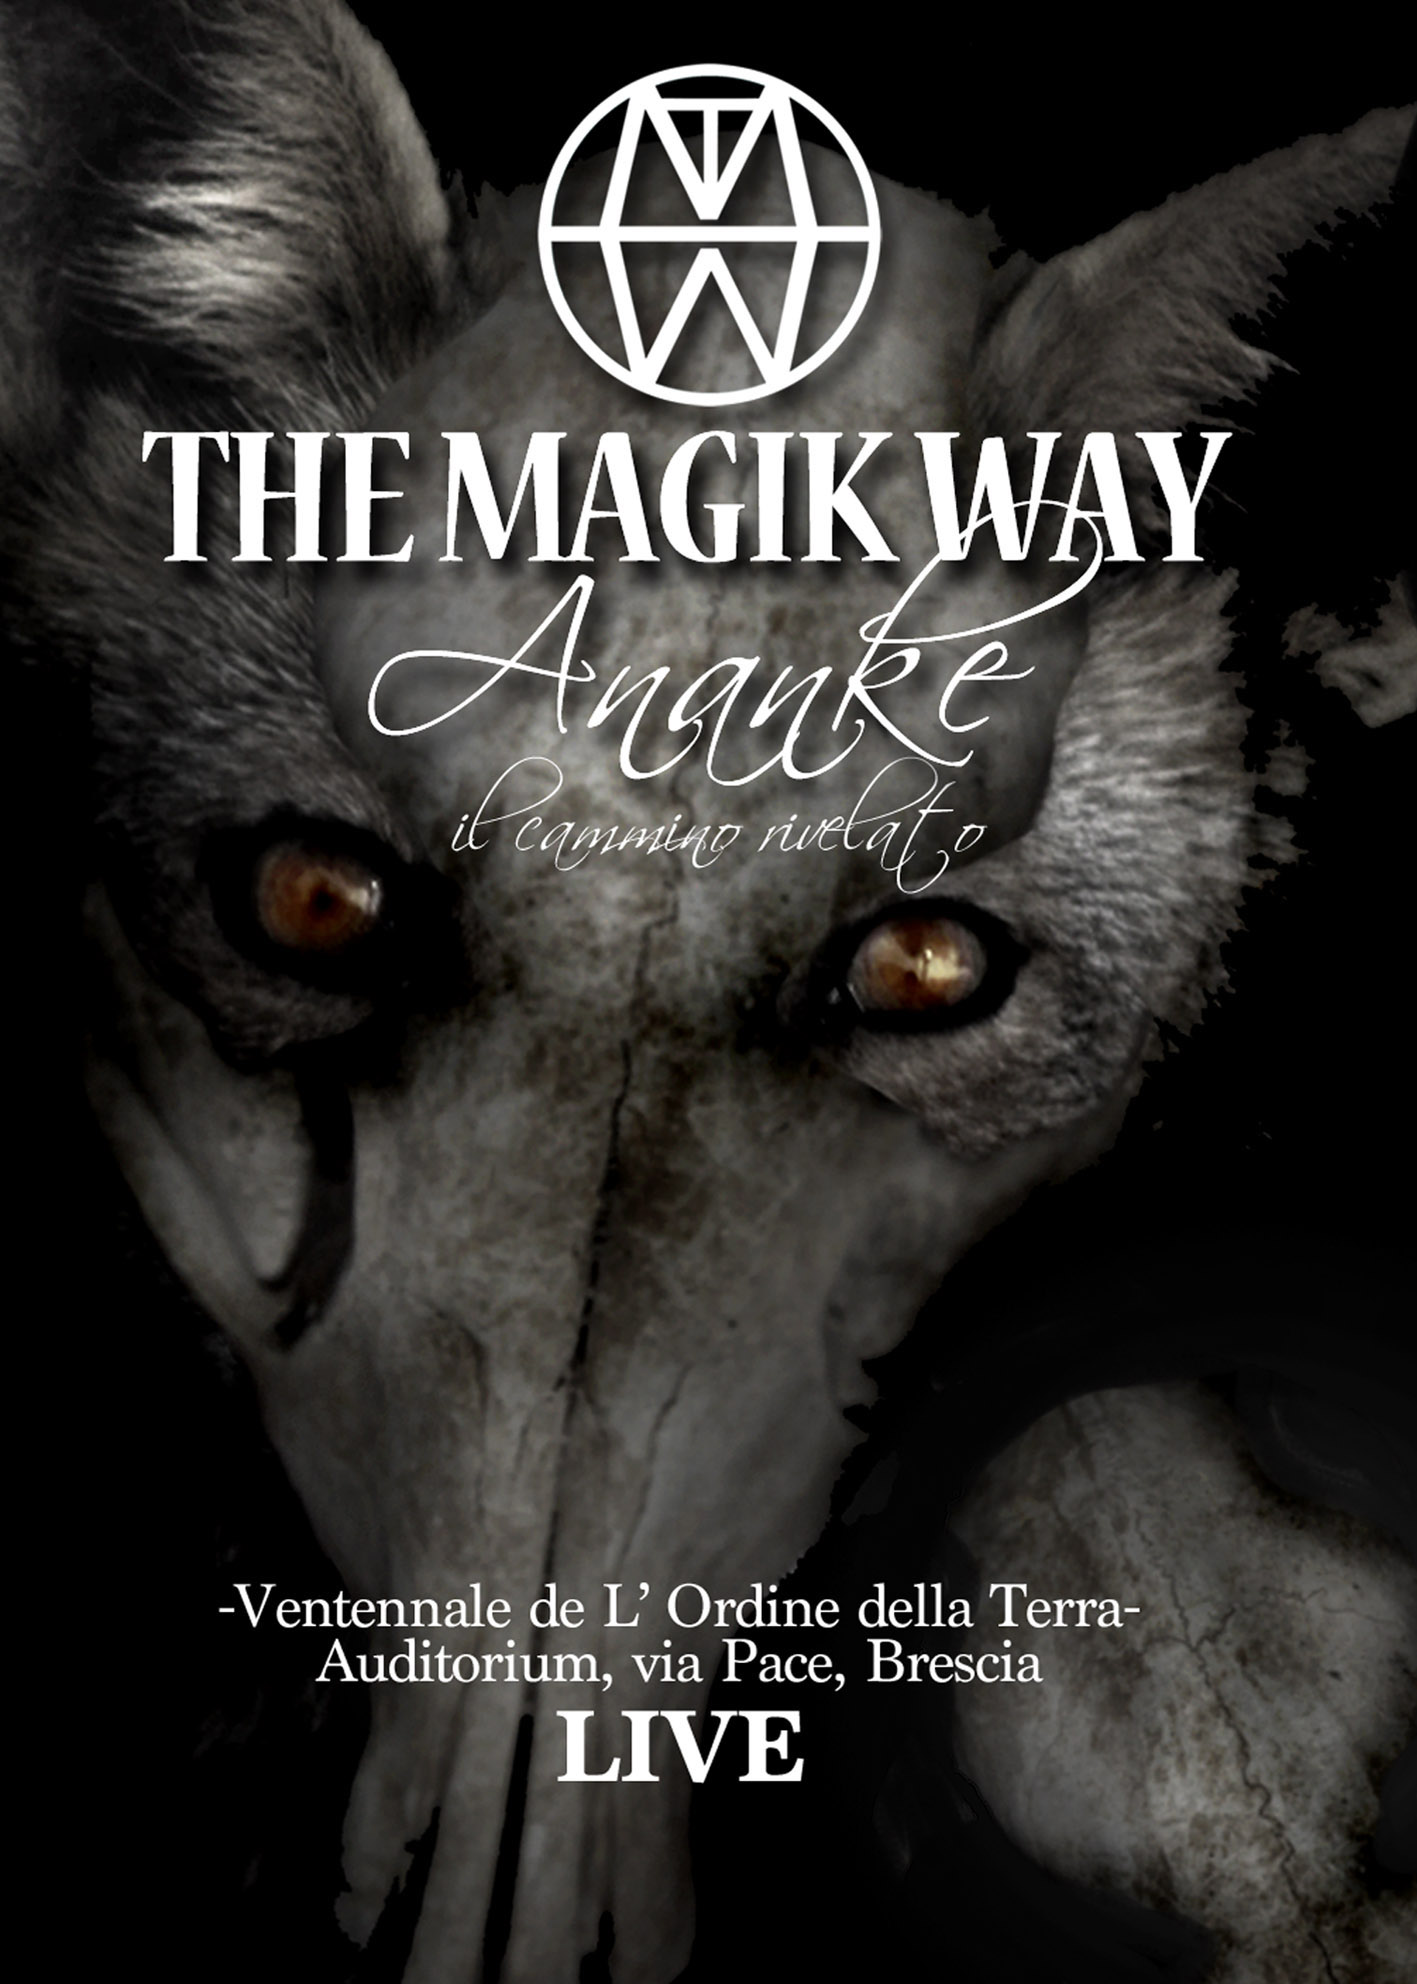 THE MAGIK WAY